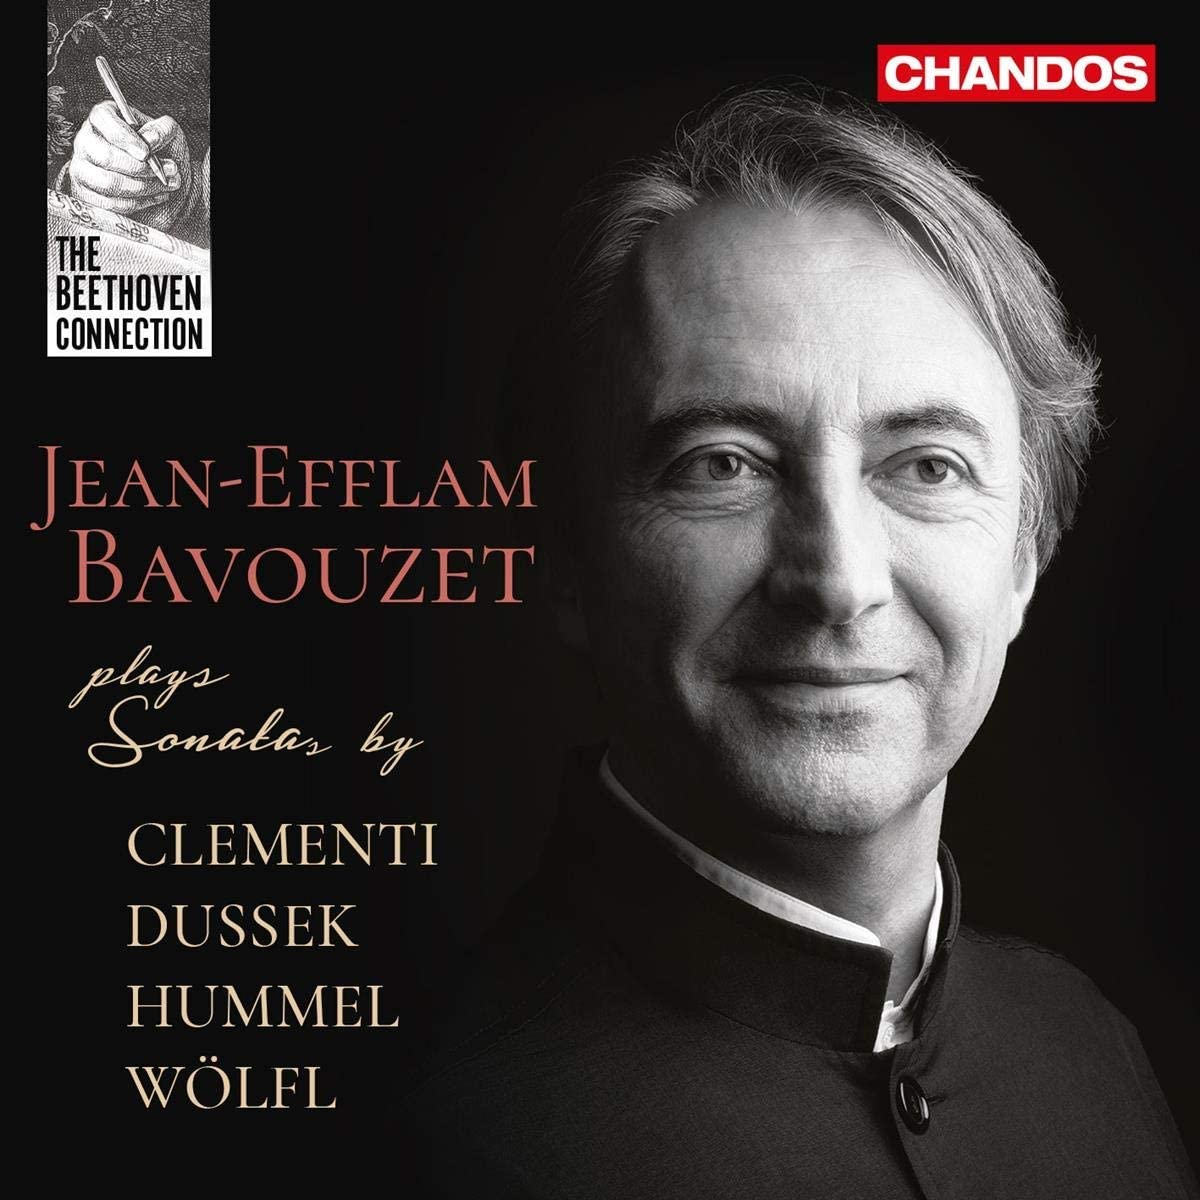 Review of The Beethoven Connection (Jean-Efflam Bavouzet)